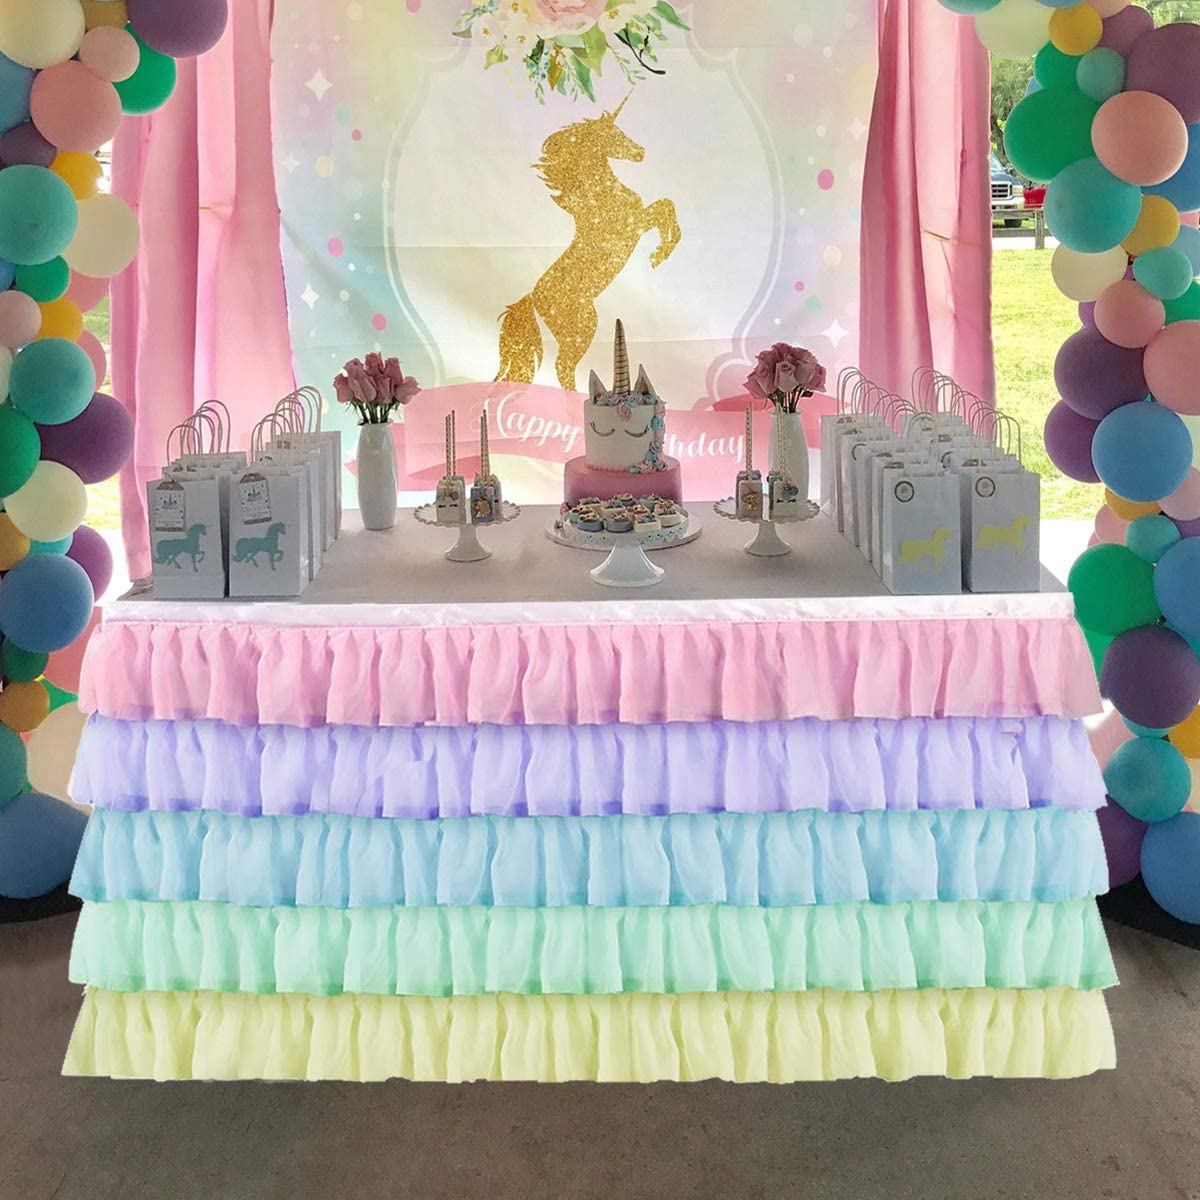 KIXIGO Rainbow Tulle Table Skirt Table Cloth for Rectangle or Round Table,Table Skirting for Wedding,Birthday,Baby Shower,Party Decoration (Rainbow, L 9(ft) H 30in)